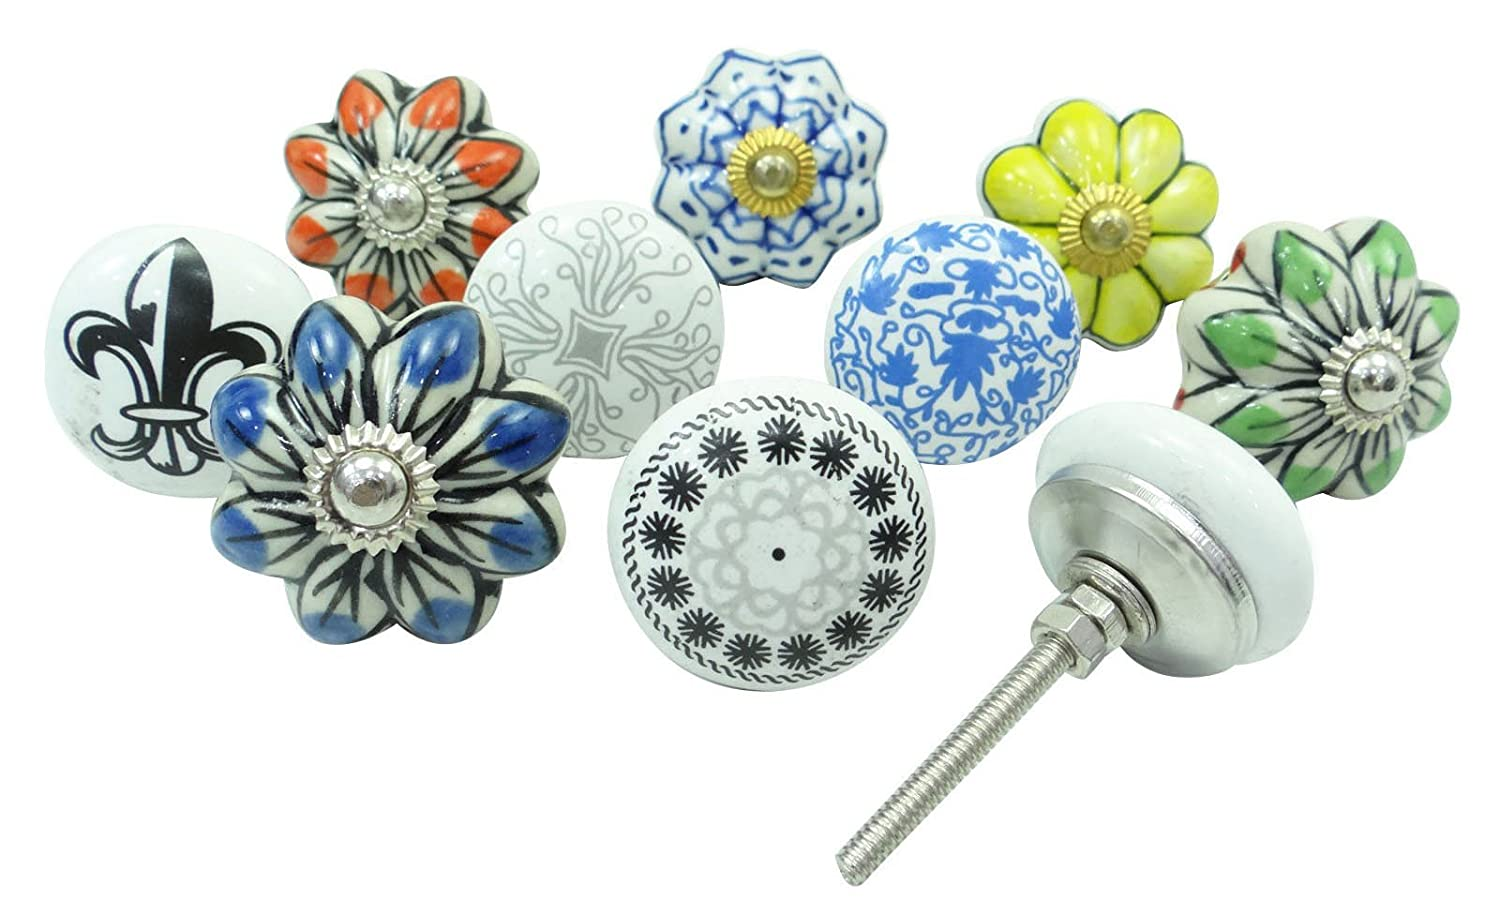 Hand Painted Ceramic Knob Cabinet Hardware Indian Kitchen Knobs Lot Of 10 Pcs Ibacrafts